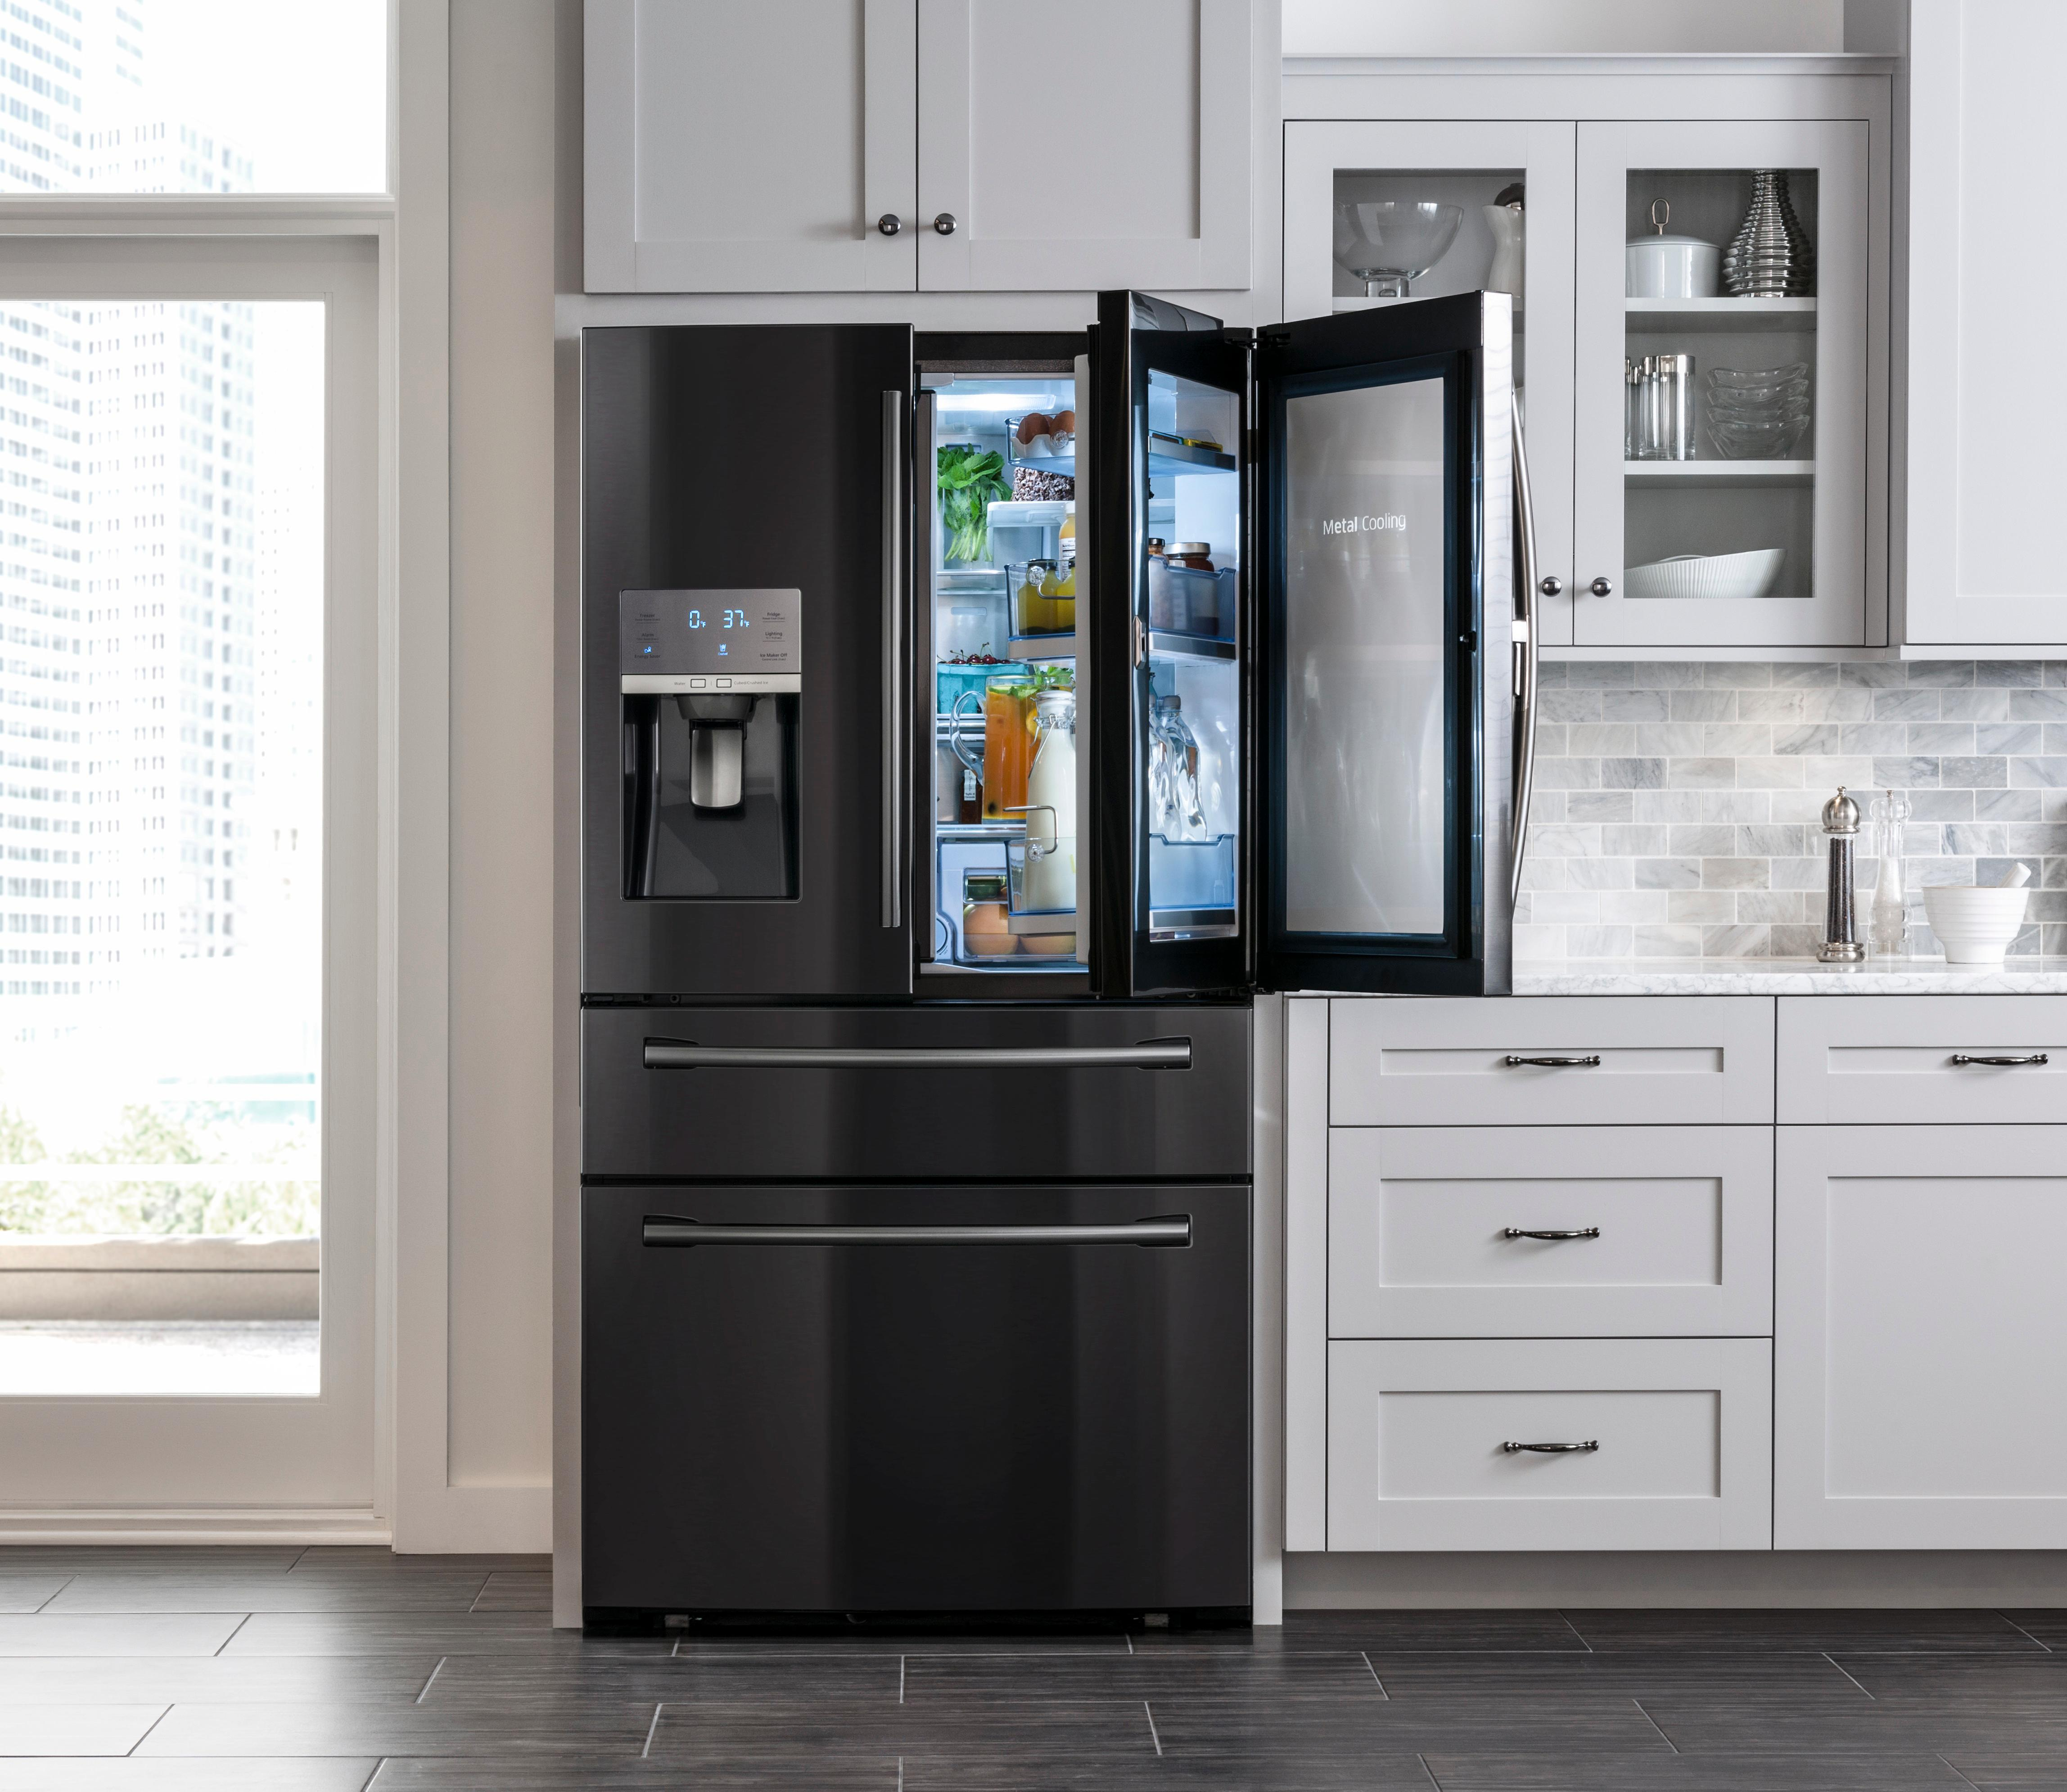 Besides Convenience Features, The French Door Refrigerator Is Designed To  Save You Money. The FlexZone Drawer Keeps Fresh Food Even Fresher.